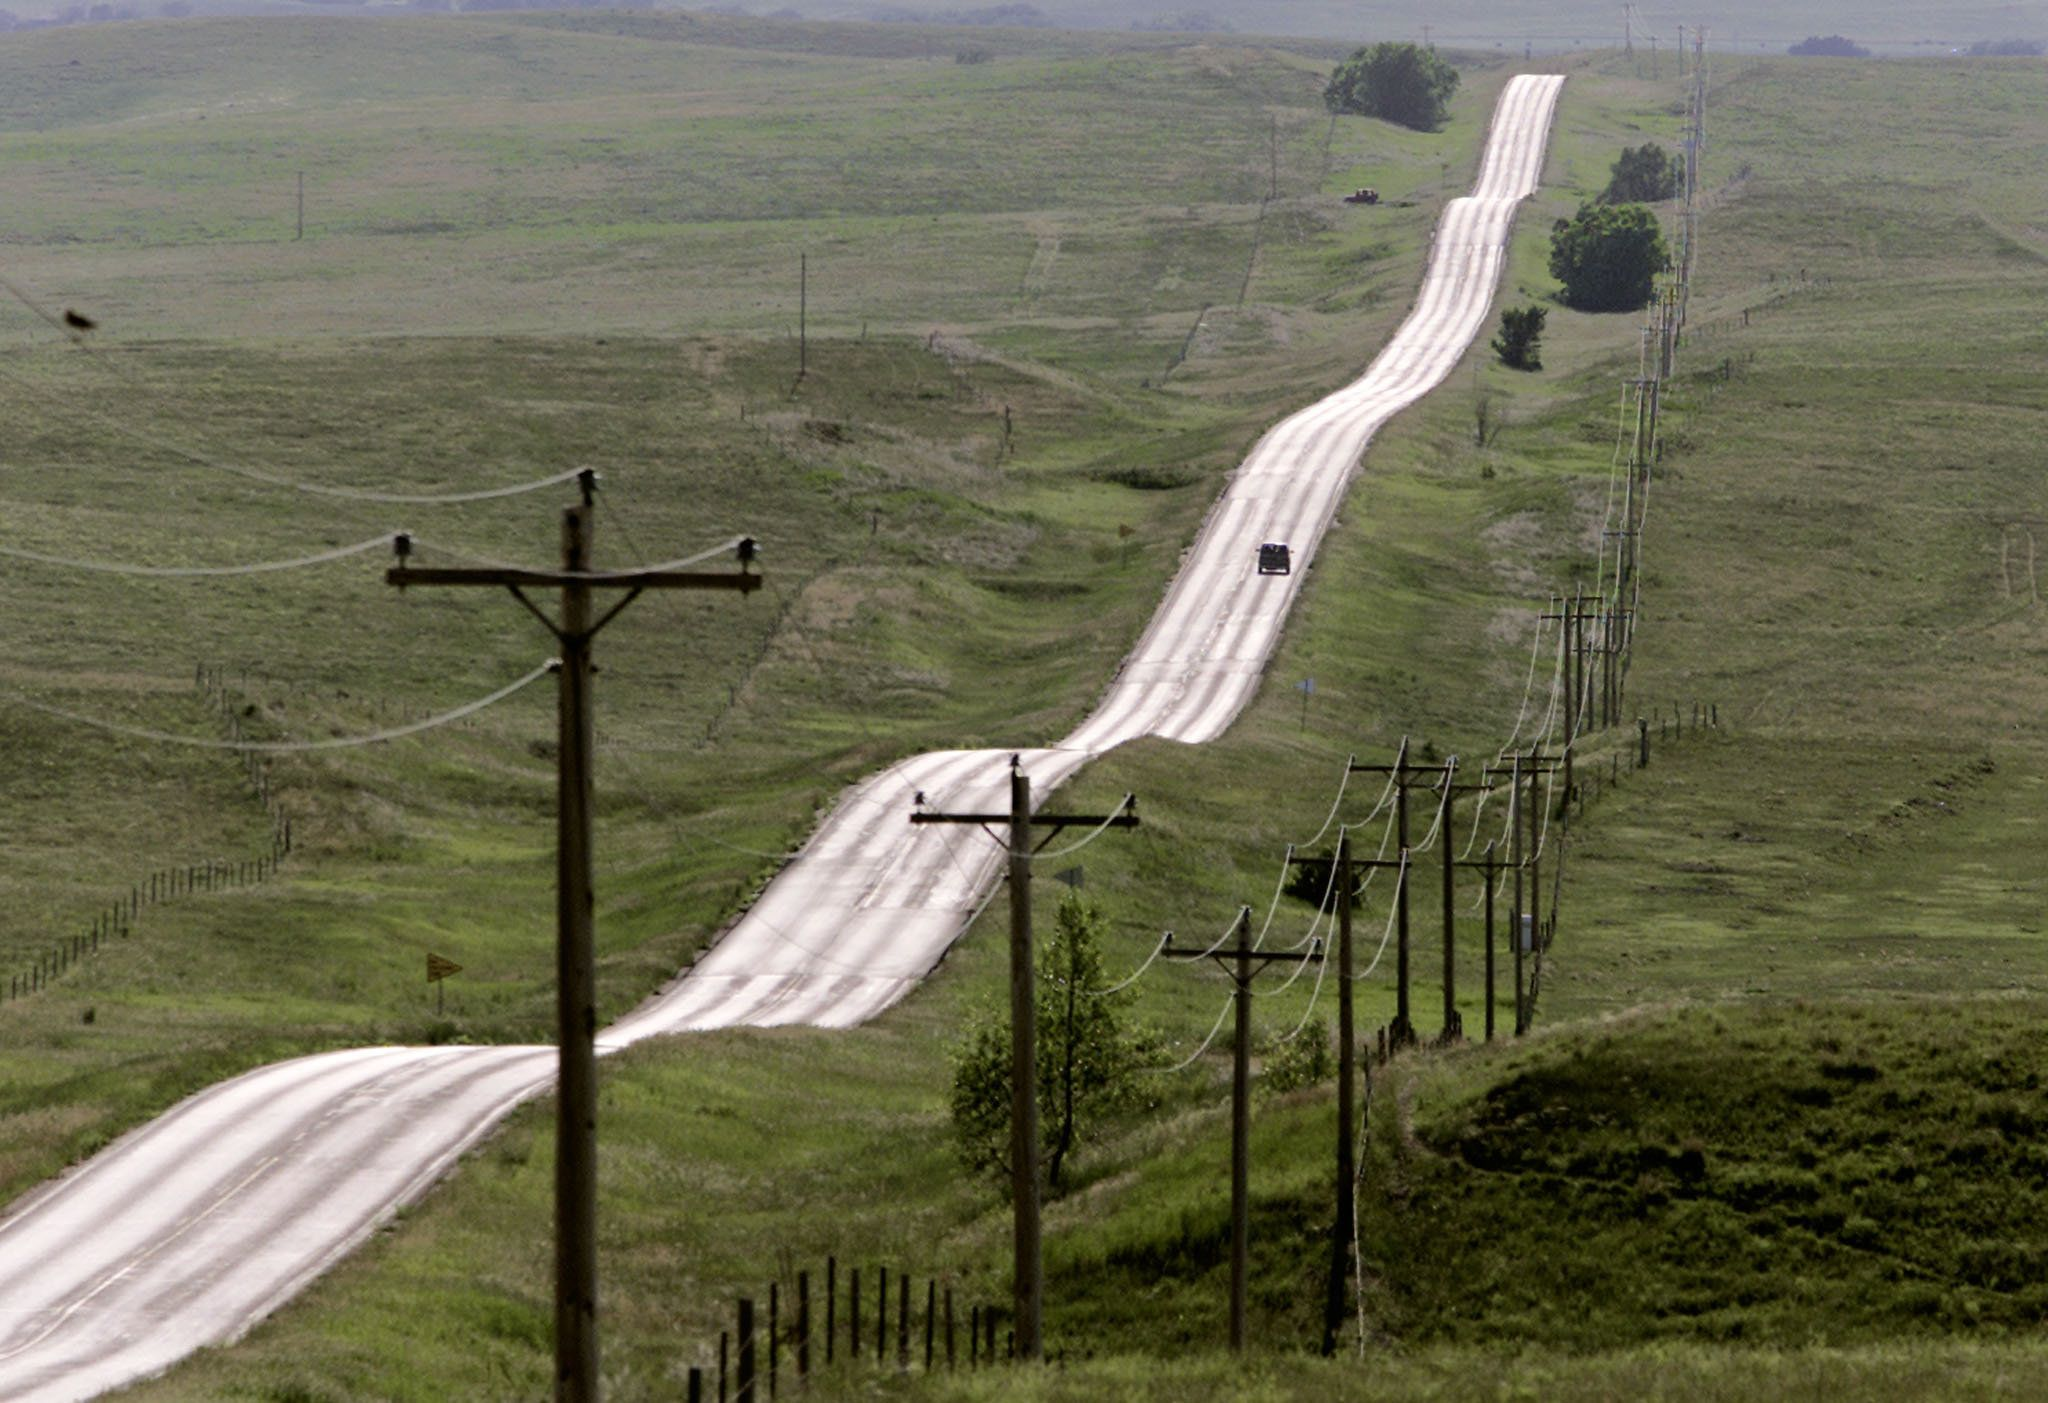 Residents of the Pine Ridge Indian Reservation in South Dakota must travel long distances along remote roads to get medical c